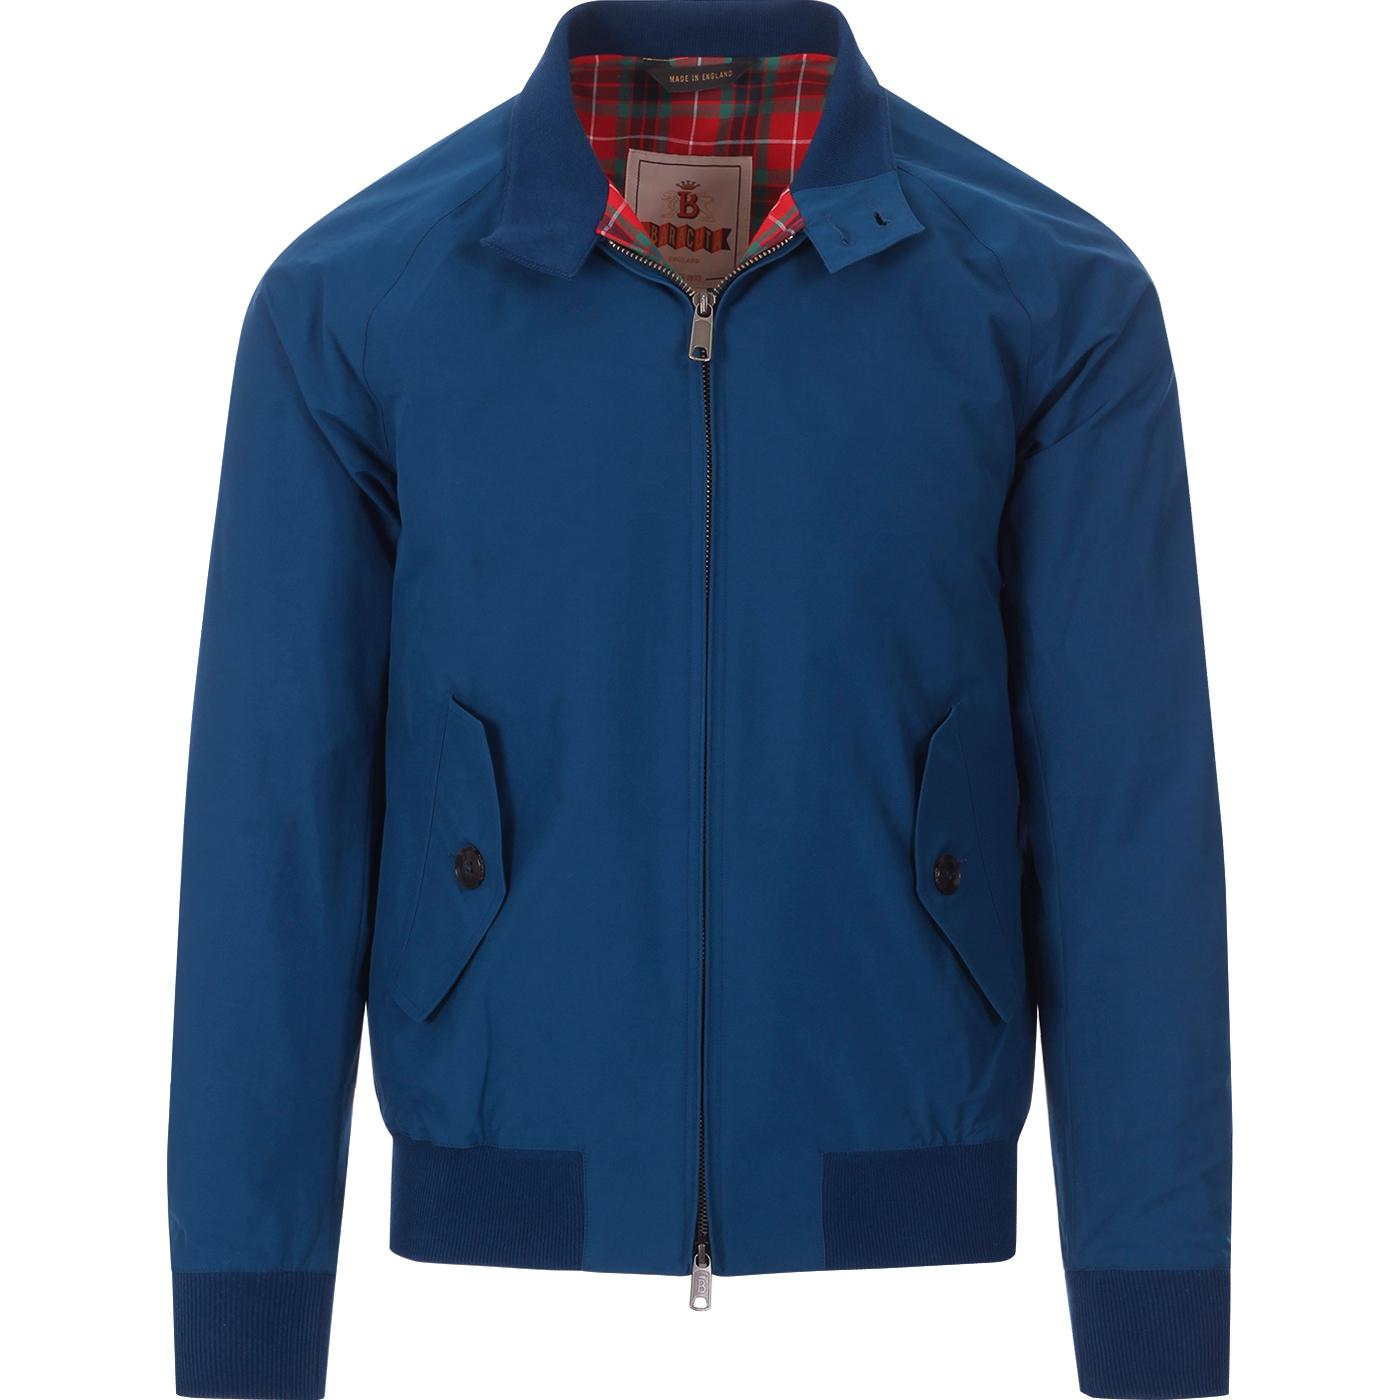 BARACUTA G9 Mod Made in England Harrington (OB)